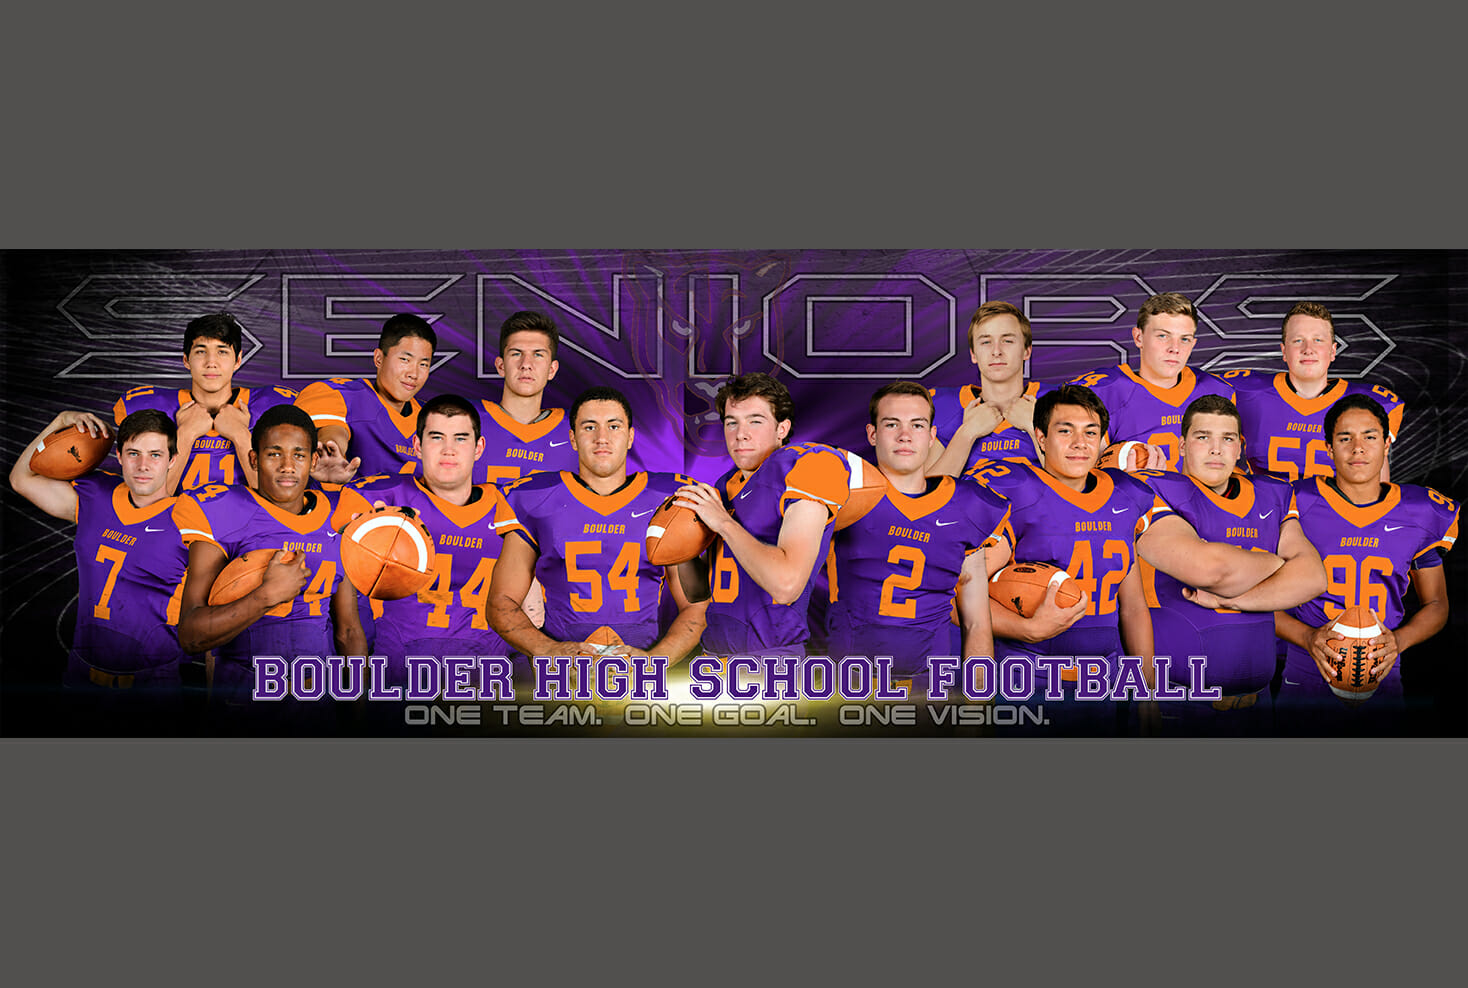 Boulder high school football senior banner